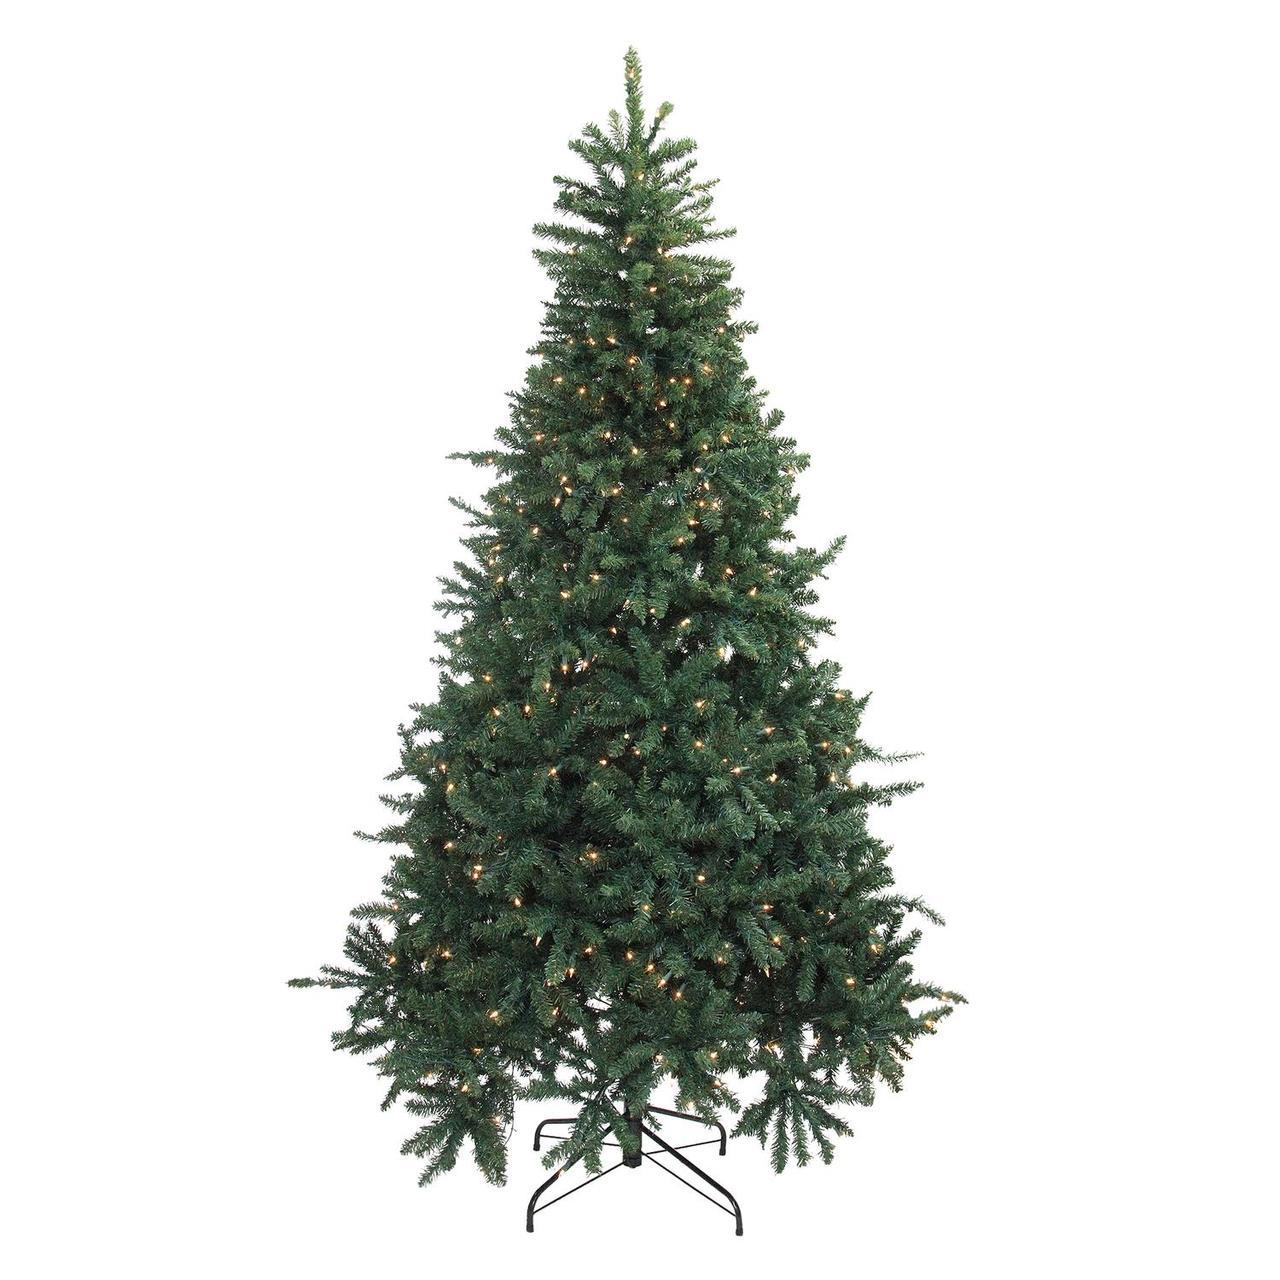 Green Artificial Christmas Tree